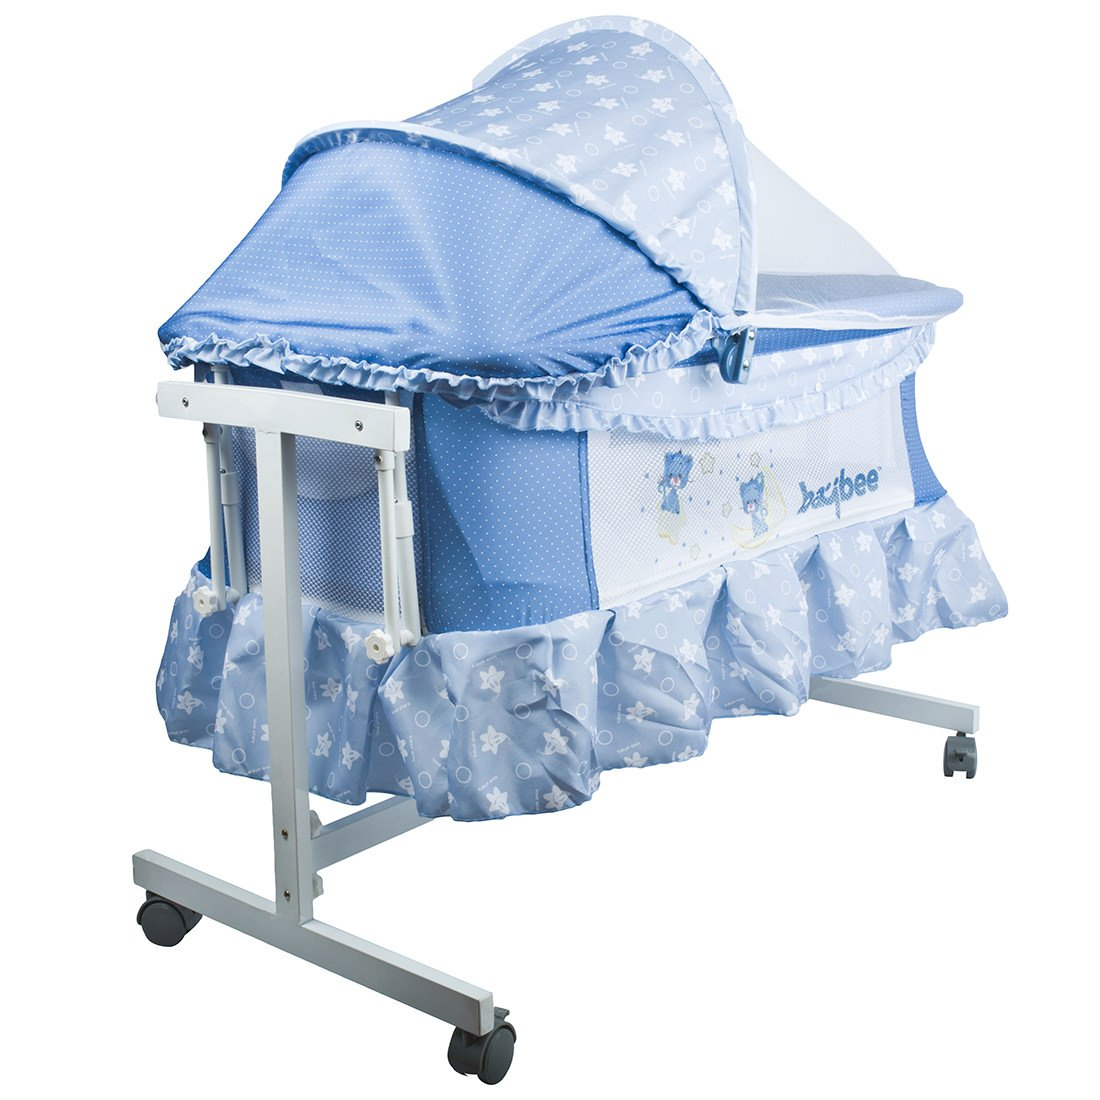 BAYBEE LittleNest Bassinet Metal Alloy Cradle with Mosquito Net-Canopy and Wheels (Mixed Colour)